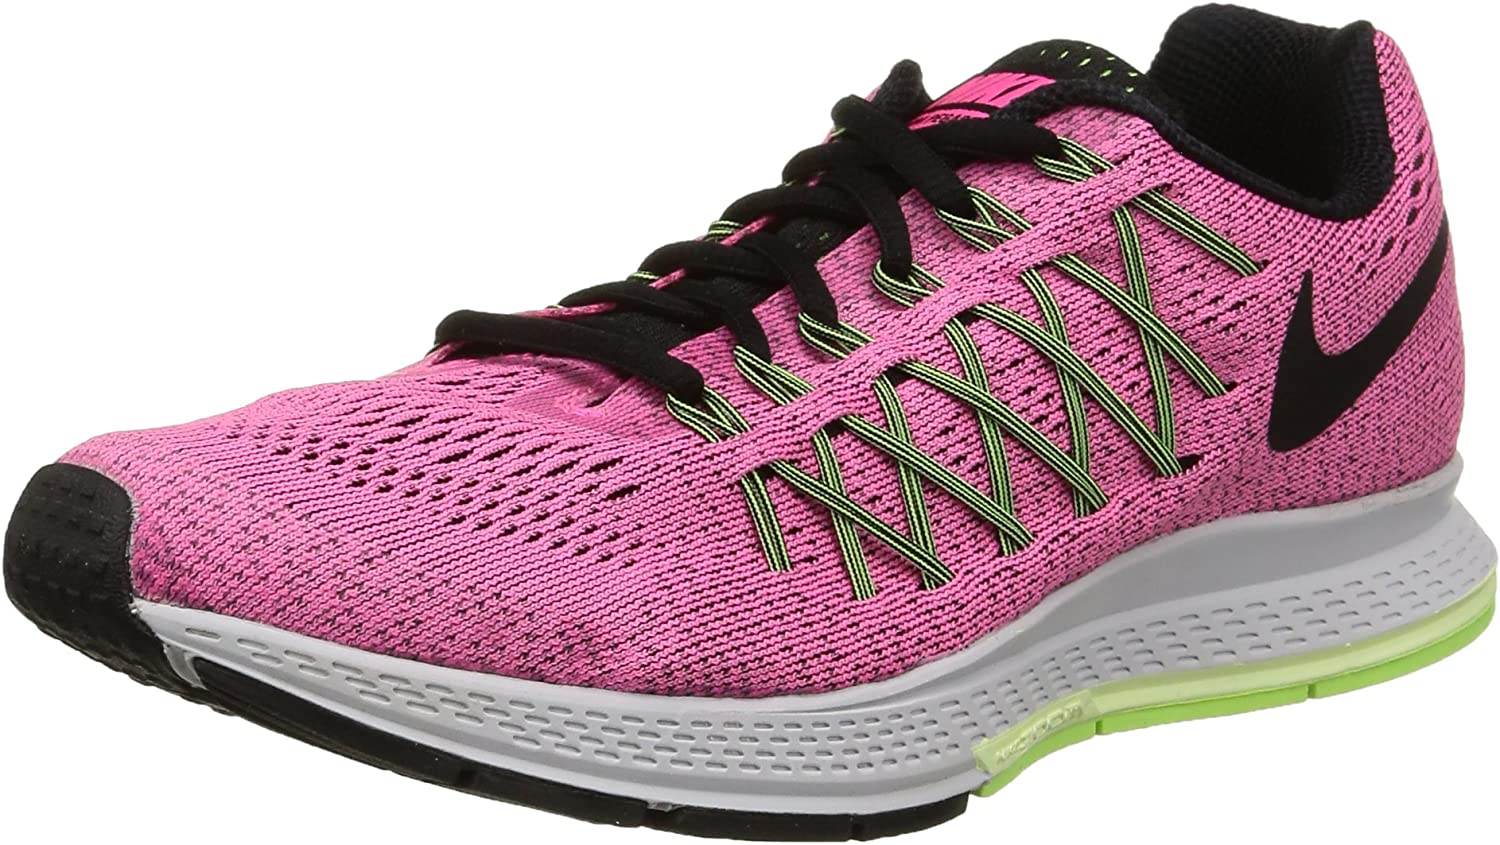 Nike - Air Zoom Pegasus 32-749344600 - El Color Rosa - Talla: 36.0 ...